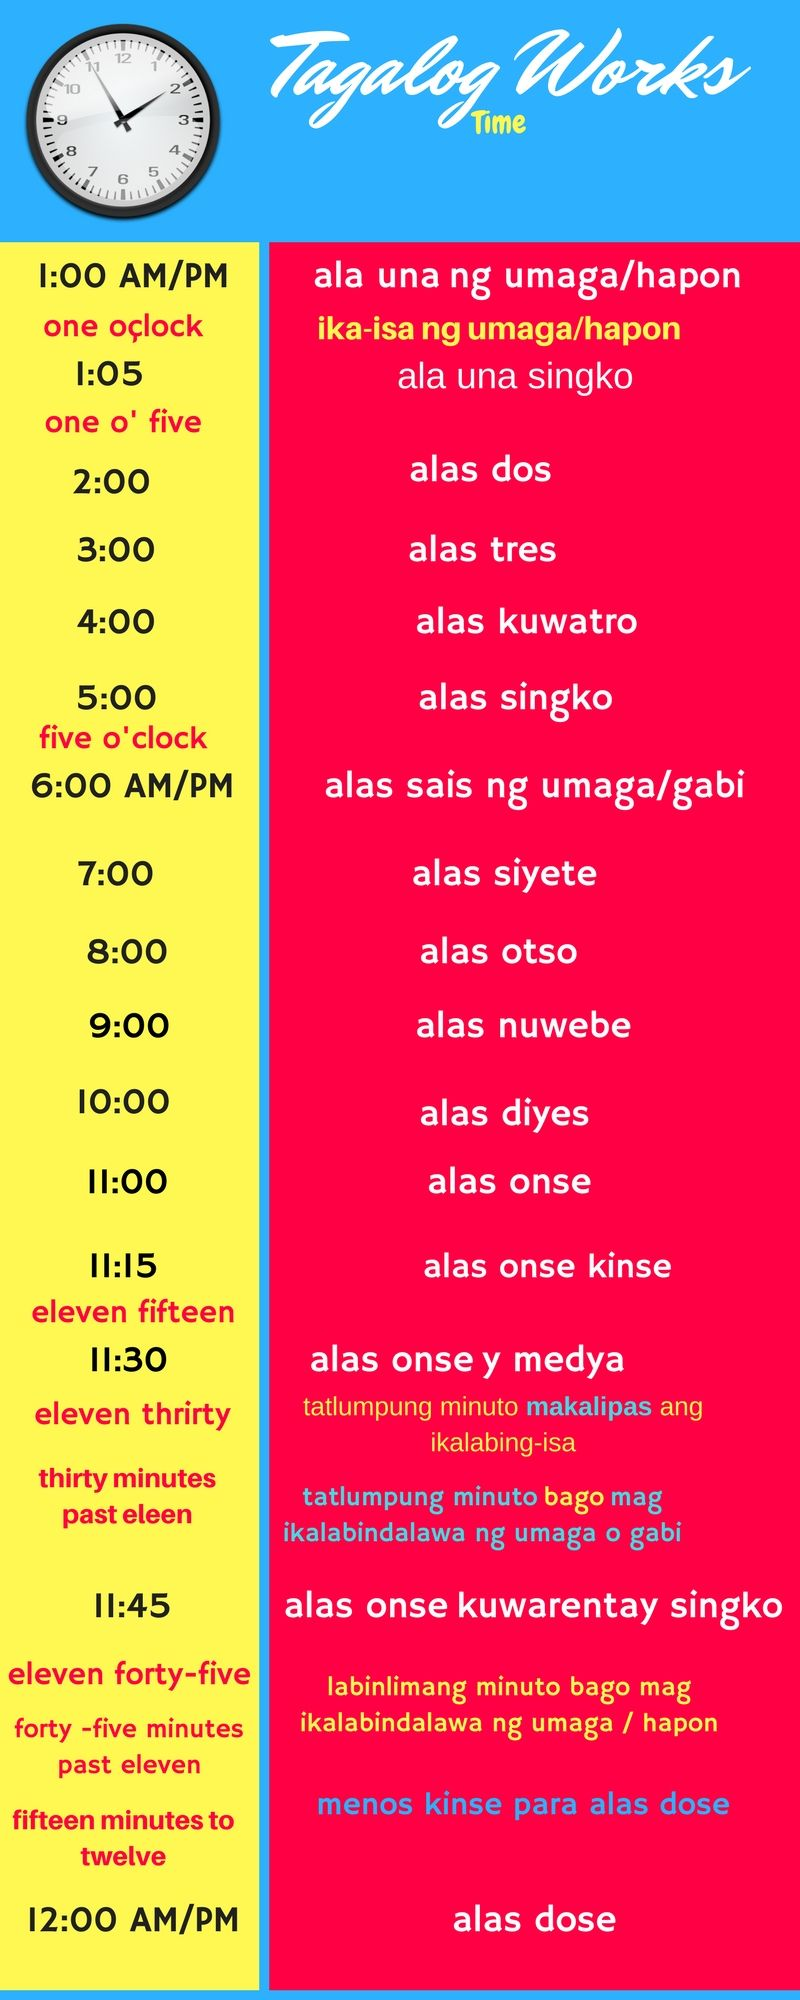 Time In Tagalog Time In Tagalog Pinterest Tagalog